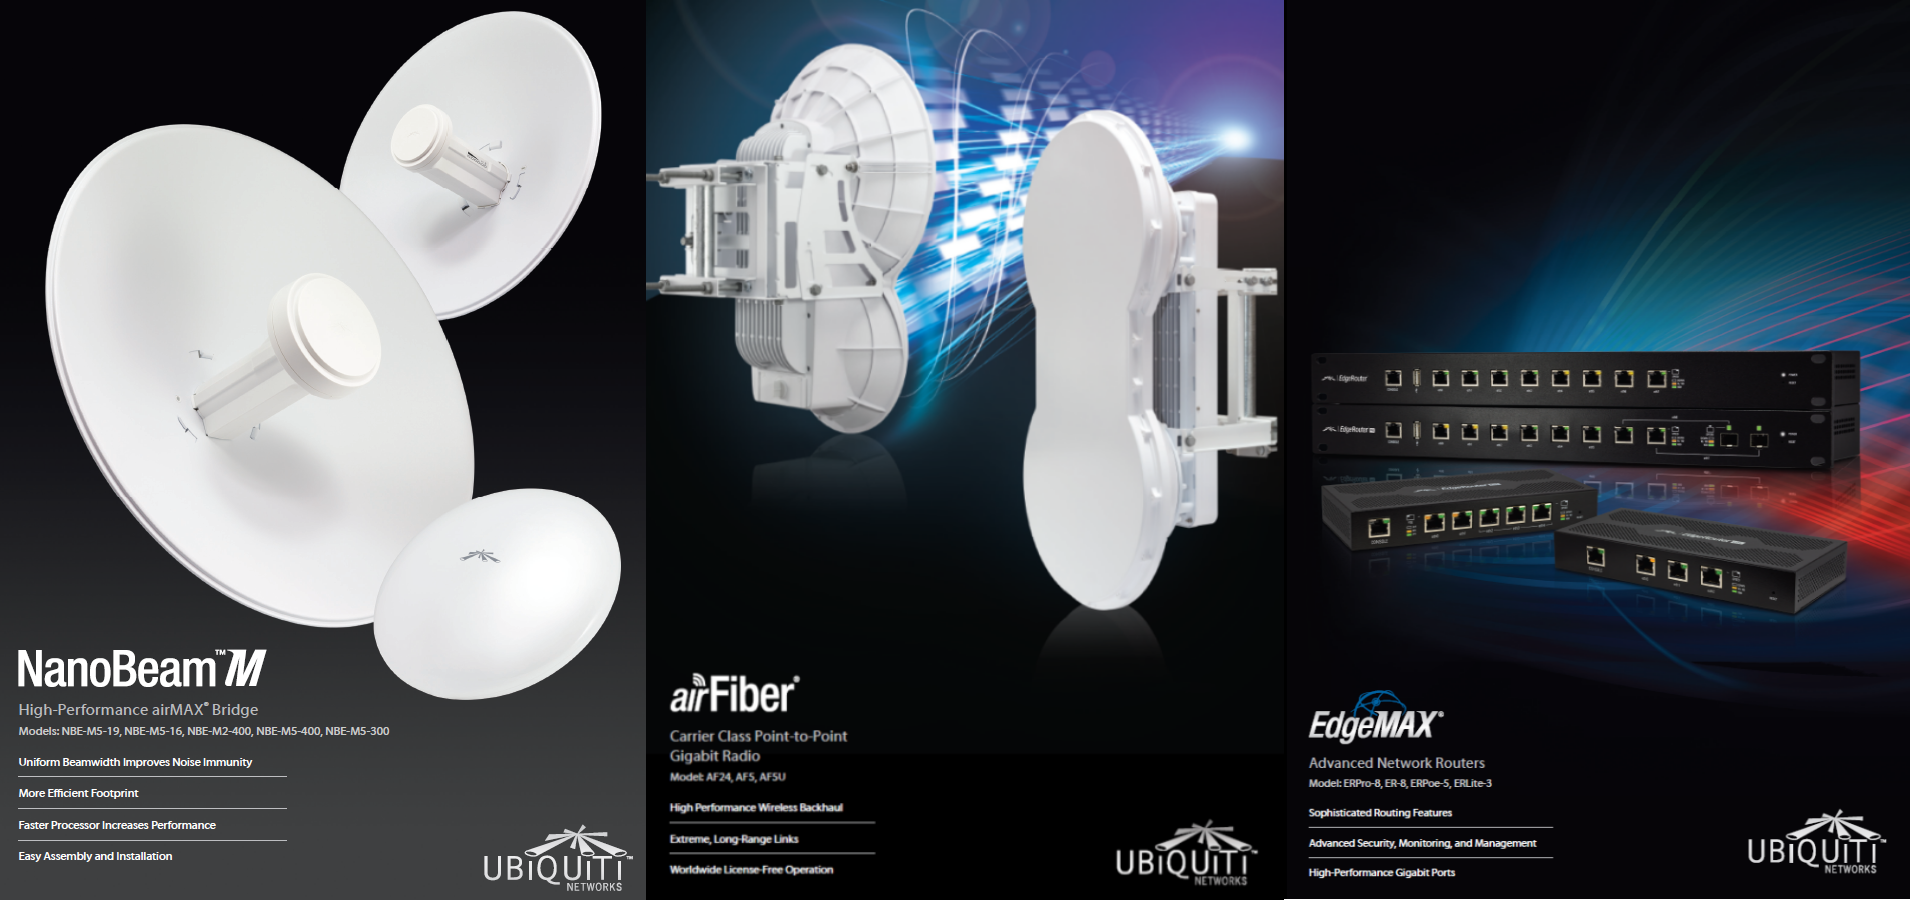 Wireless Internet Service Provider >> Ubiquiti Networks Introduces Next-Gen Fixed Wireless Broadband Infrastructure